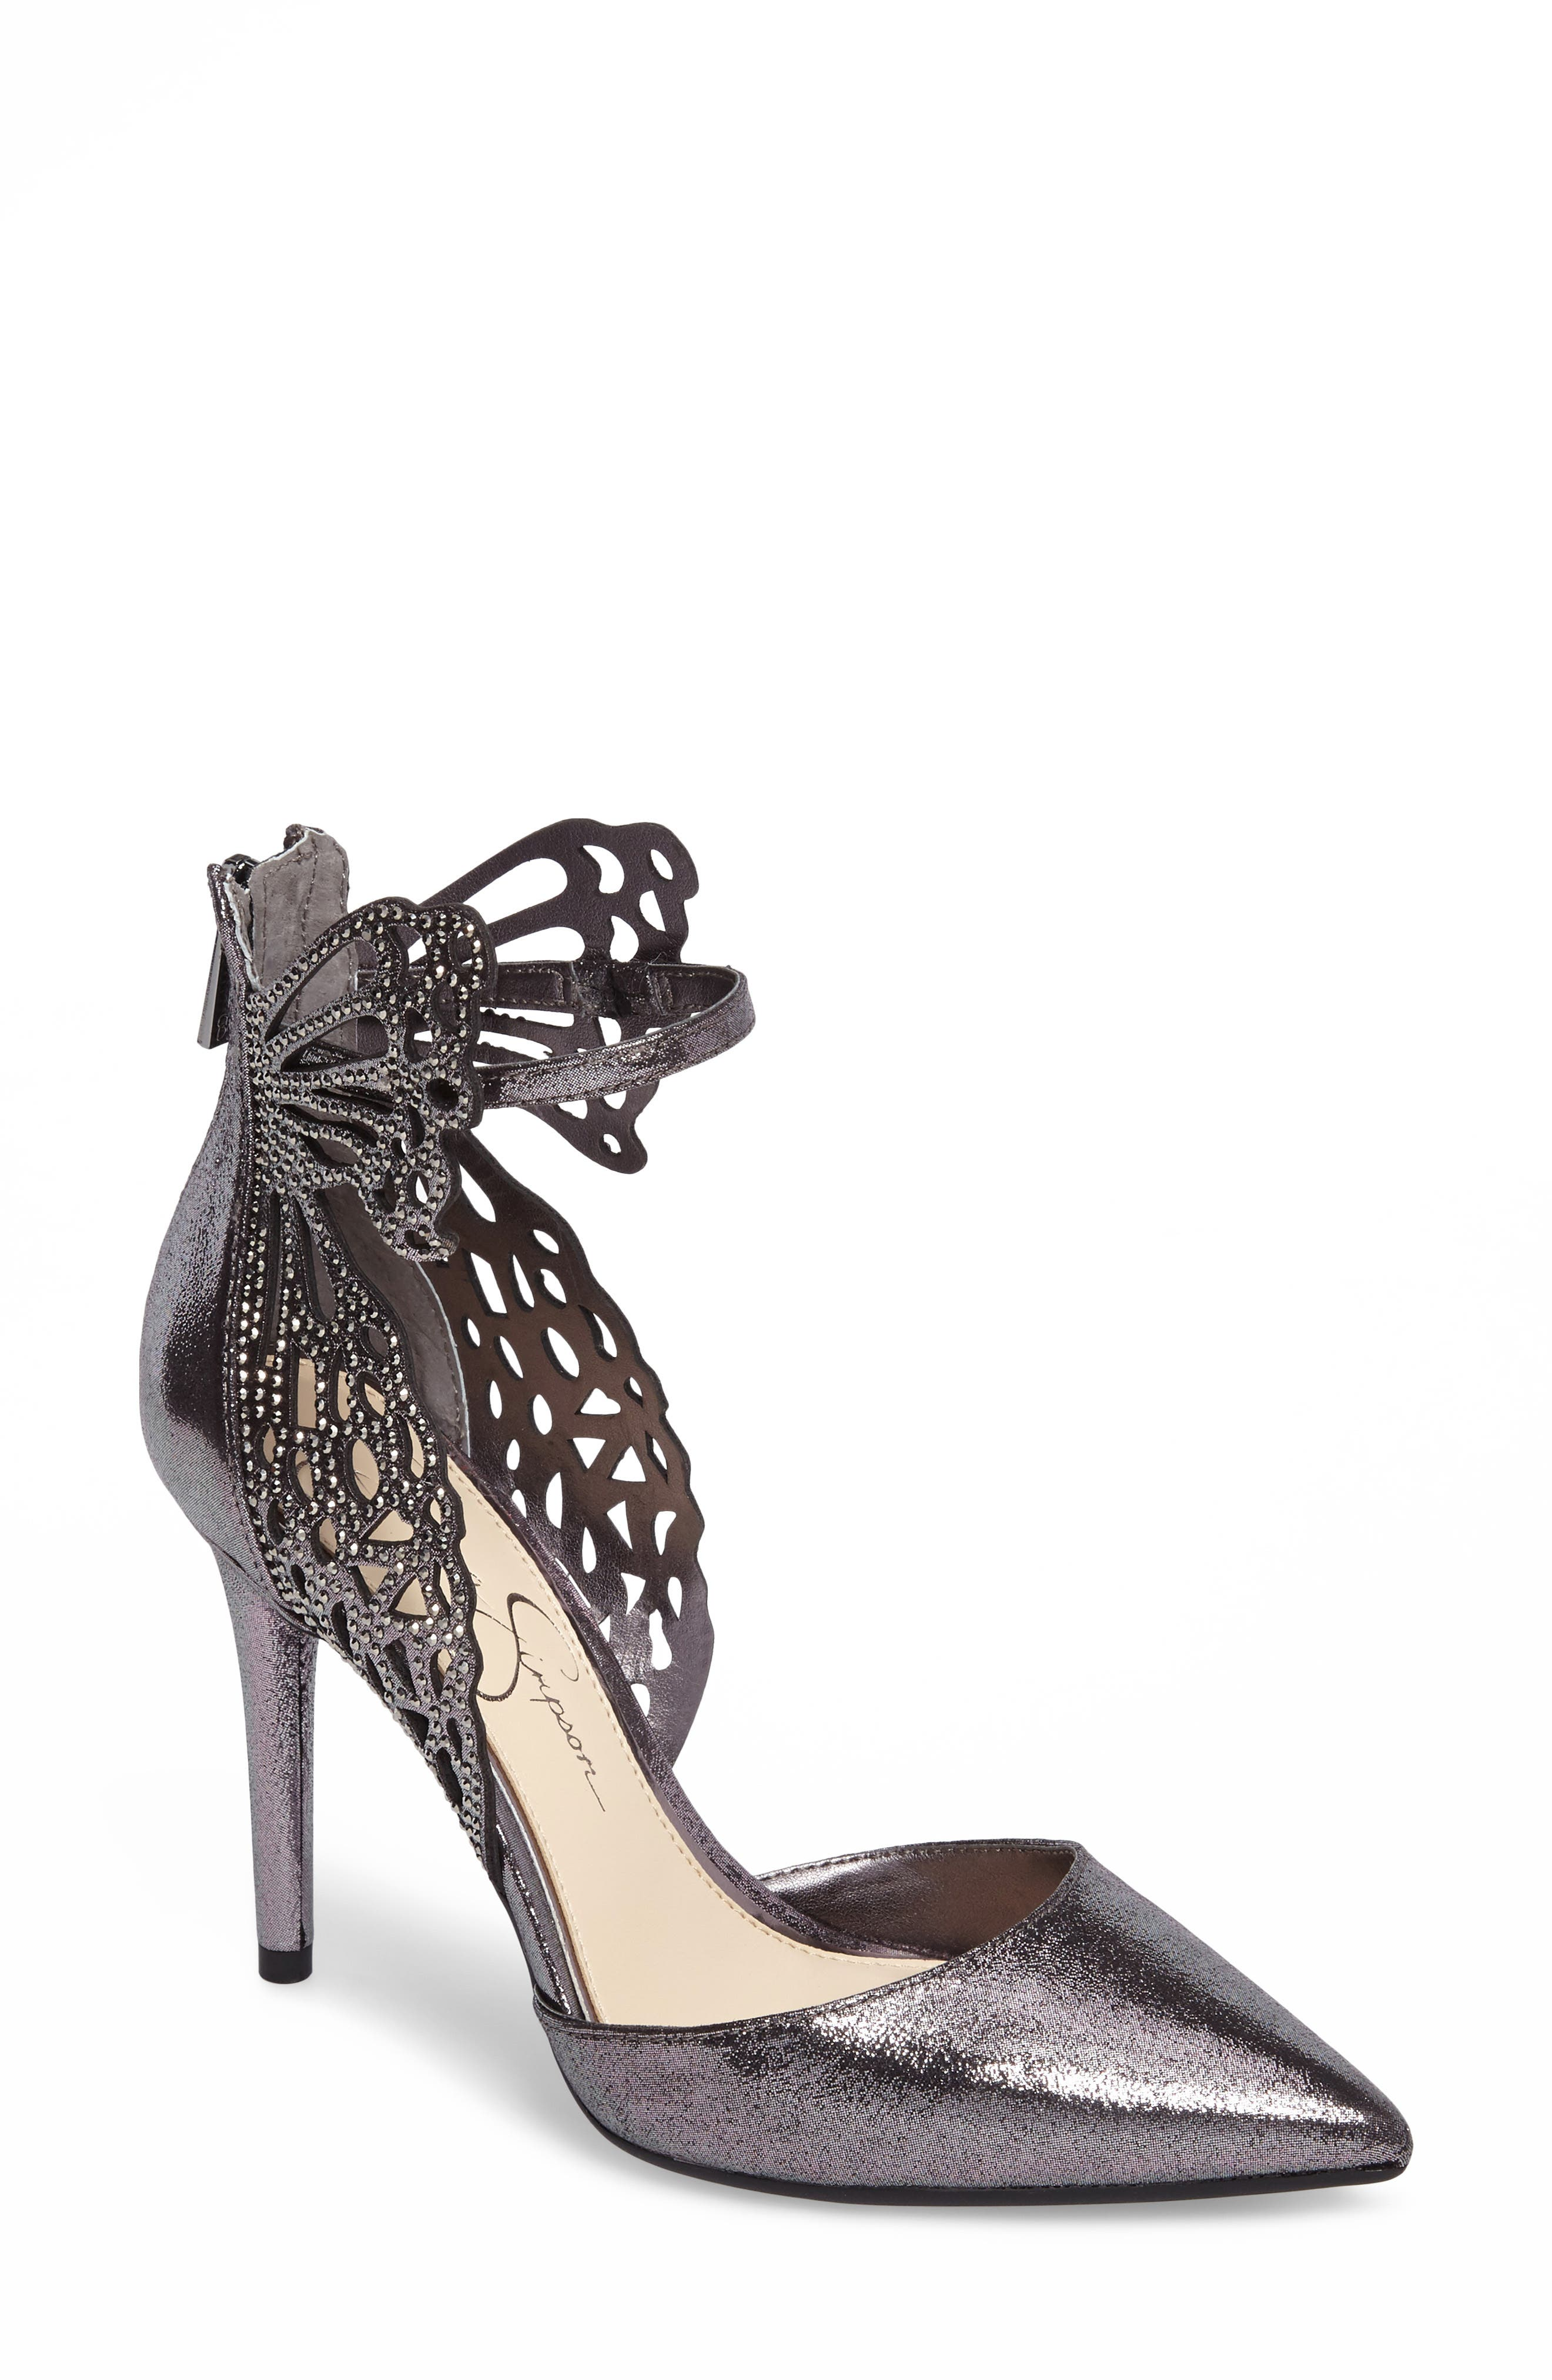 Leasia Butterfly Pump,                             Main thumbnail 1, color,                             Pewter Satin